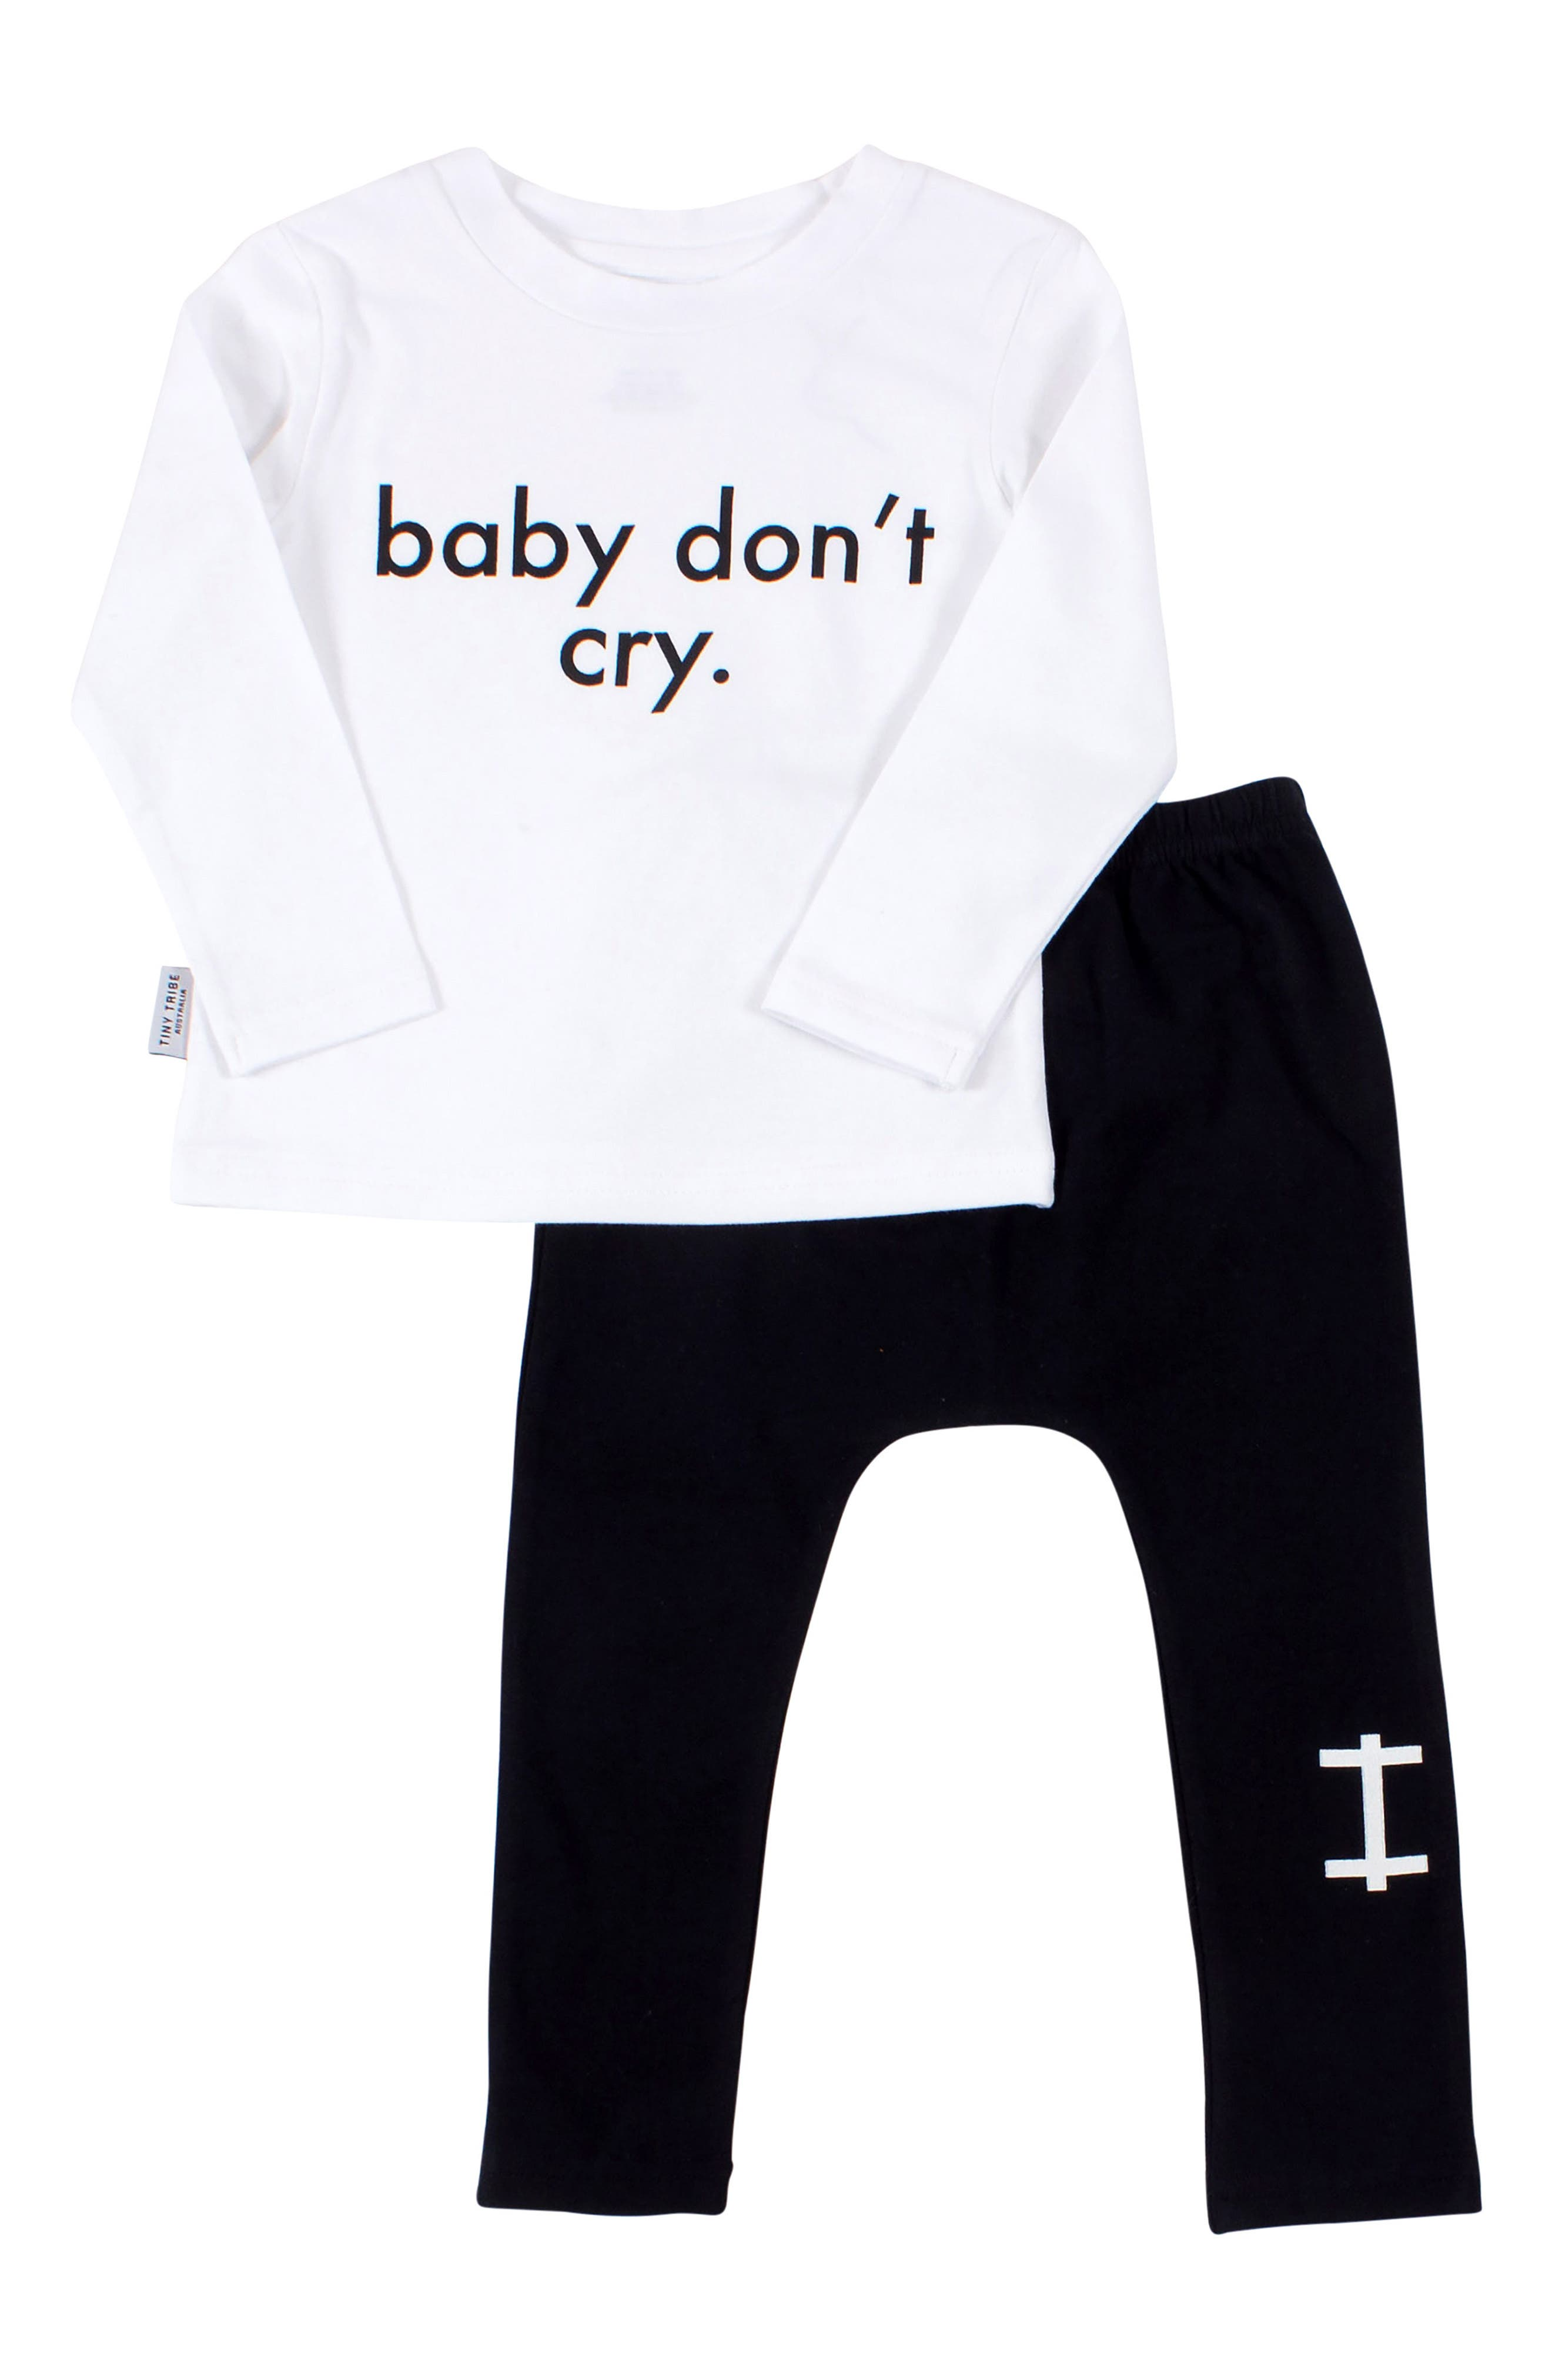 Baby Don't Cry Tee & Leggings Set,                         Main,                         color, WHITE/ BLACK